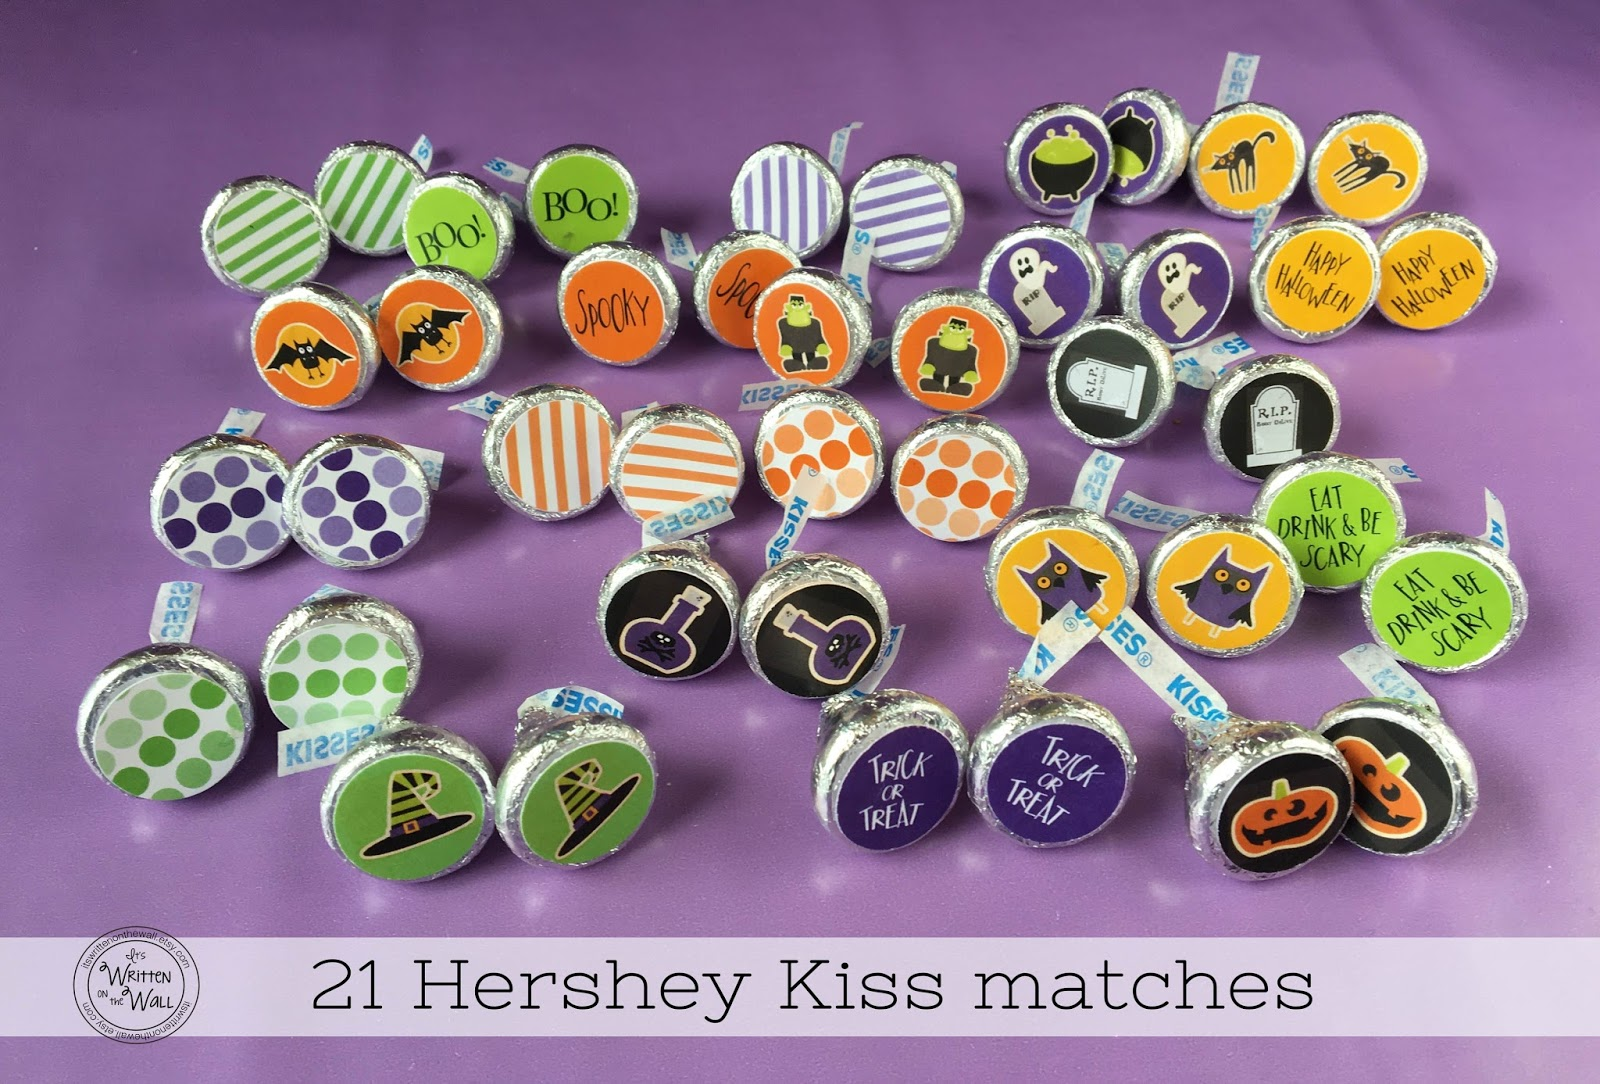 matchmaking party games Find and save ideas about adult party games on pinterest and 3 boxes or balls going around the table with a card or something specifying the matching baskets.